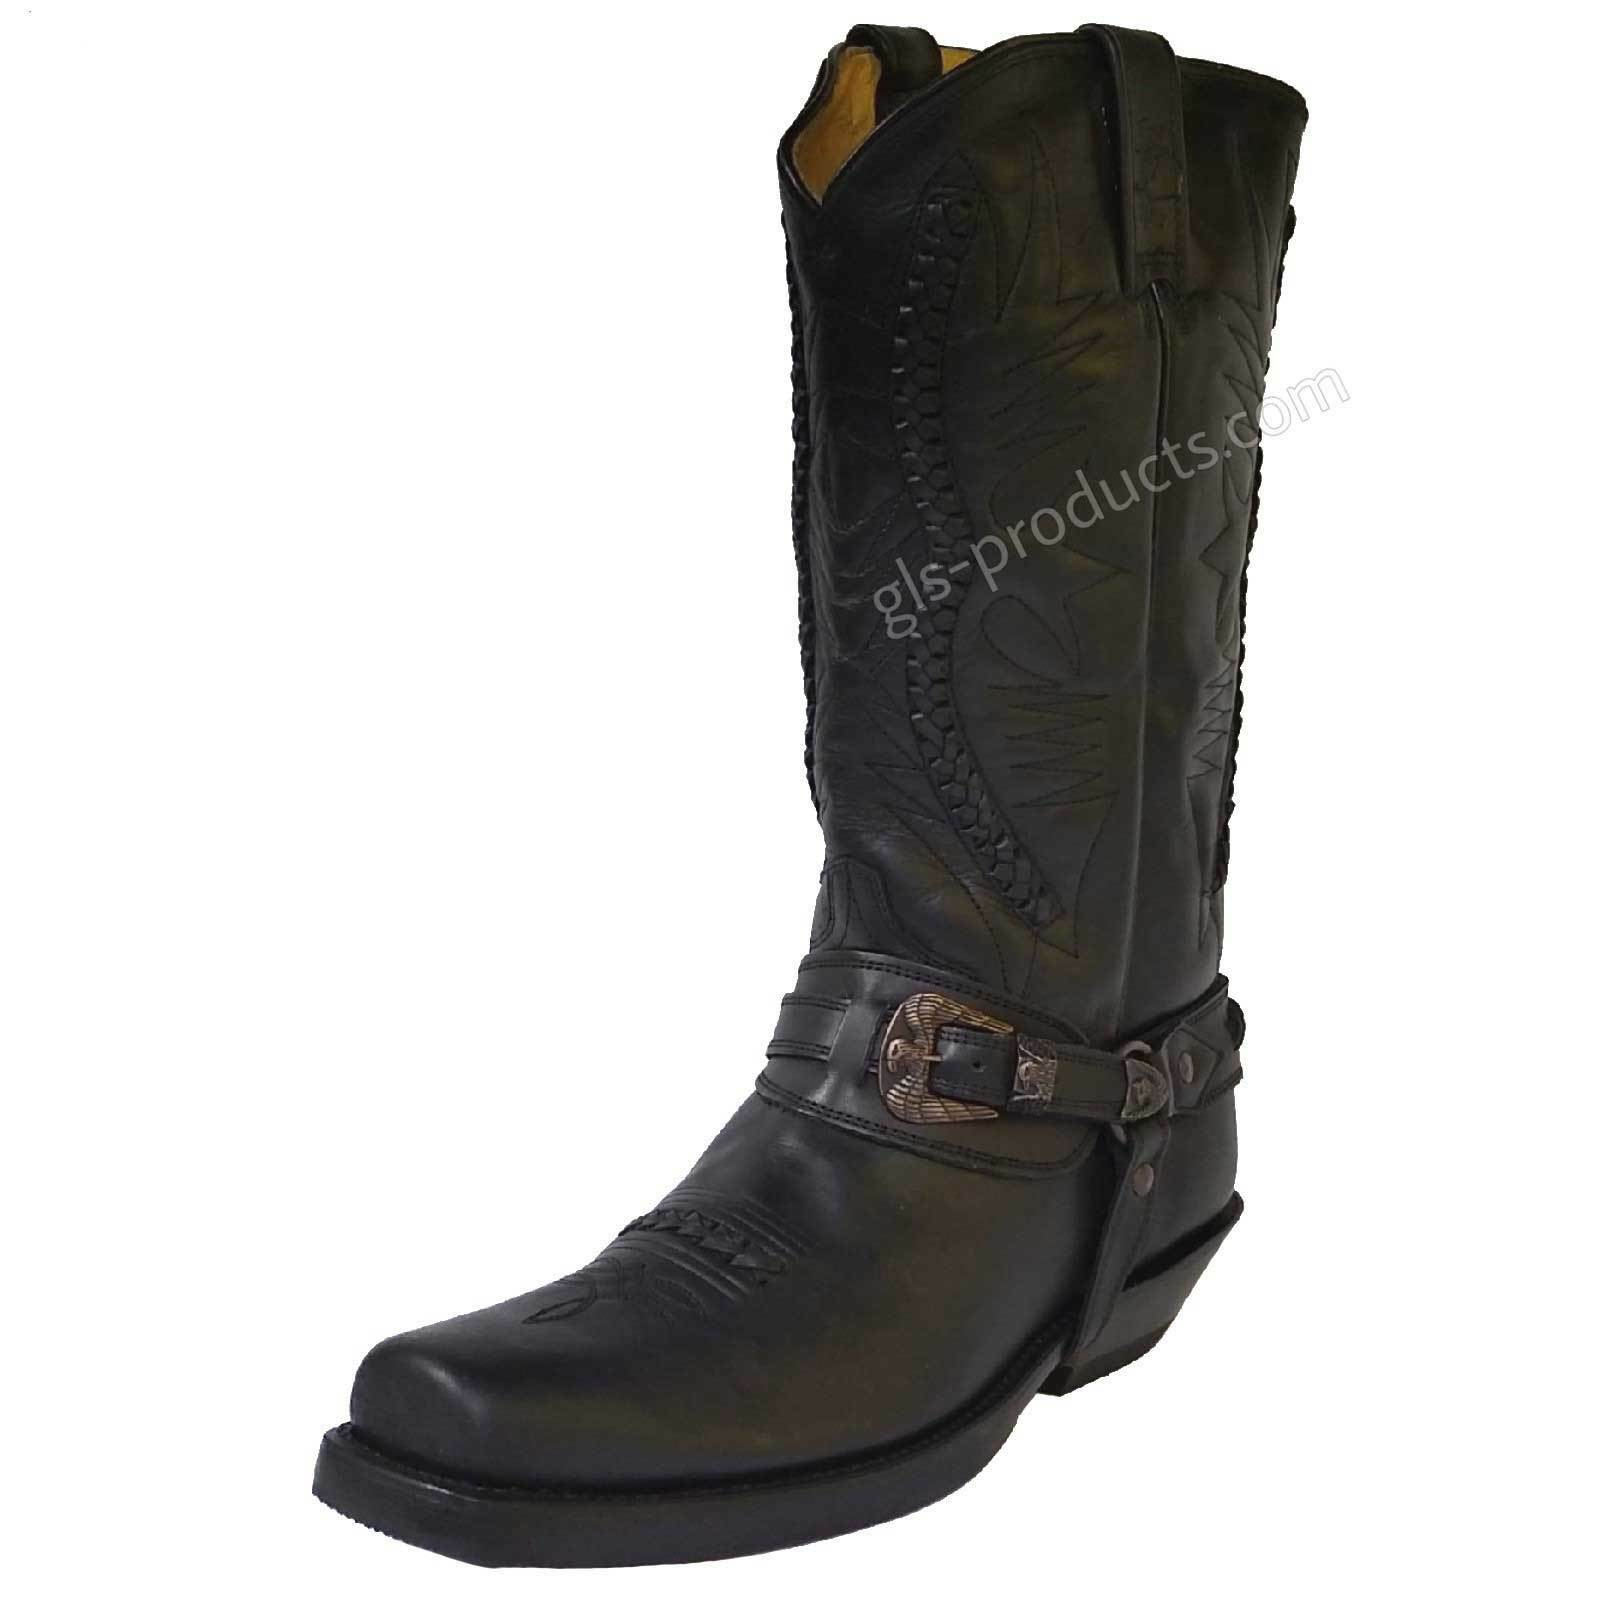 Rancho 9064 New Original Biker Boots Cowboy Style Black genuine leather handmade